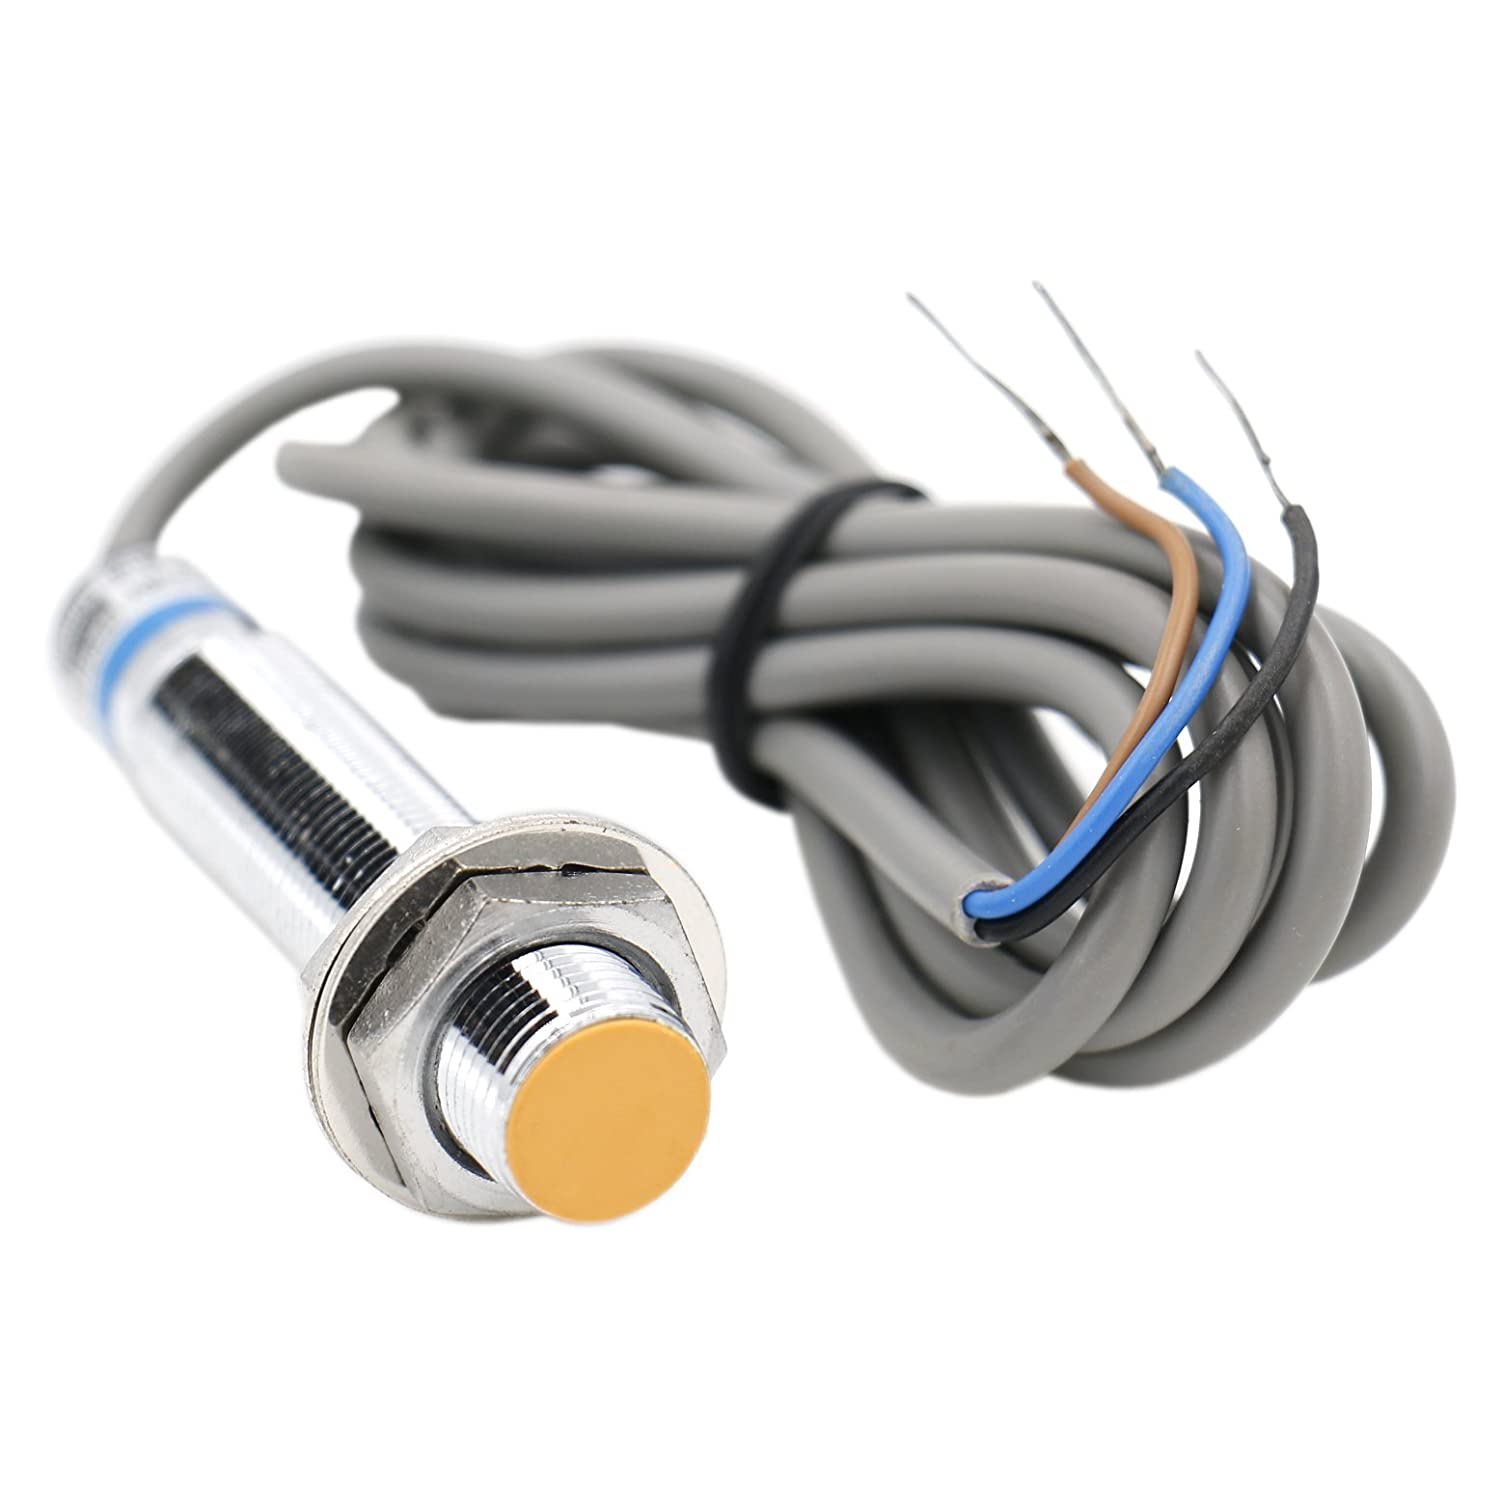 Heschen inductive proximity sensor switch LJ12A3-2-Z/BY detector 2 mm 6-36 VDC 300mA PNP normally open(NO) 3 wire Heschen Electric Co.Ltd HS-LJ12A3-2-Z/BY